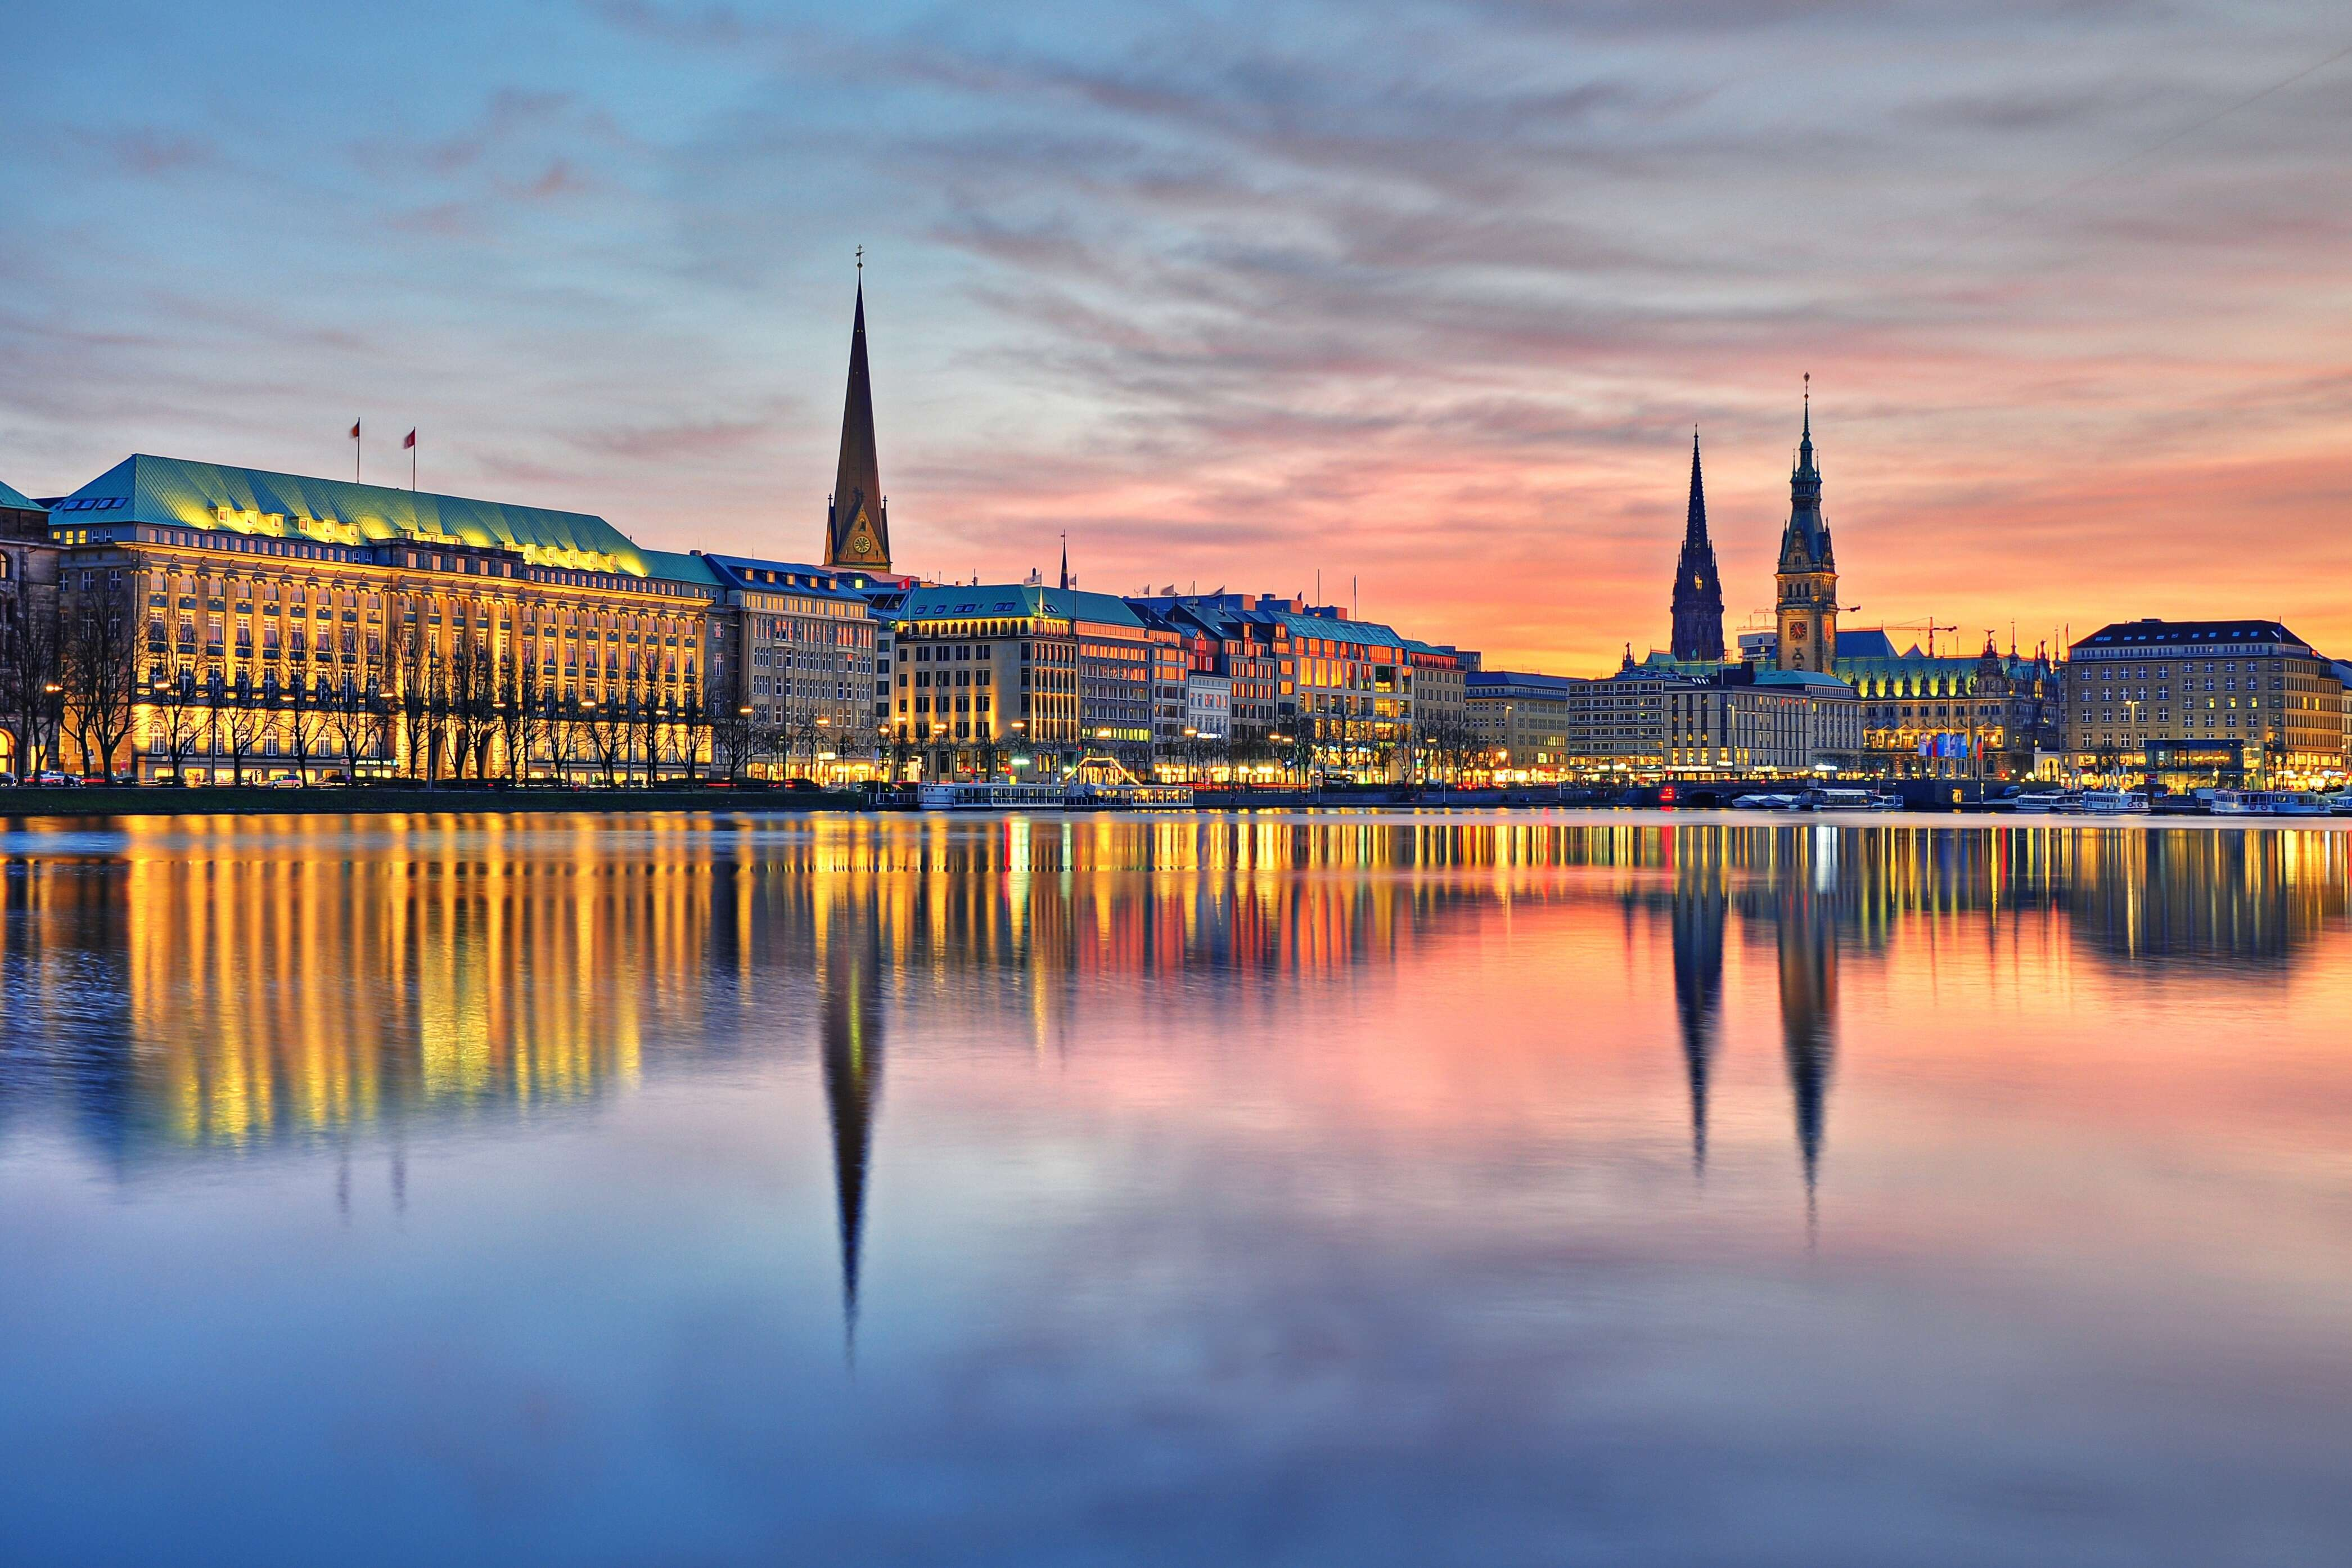 Germany's Cultural Cities & the Romantic Road with Oberammergau Passion Play featuring Berlin, Hamburg, Marburg, Rothenburg and Munich